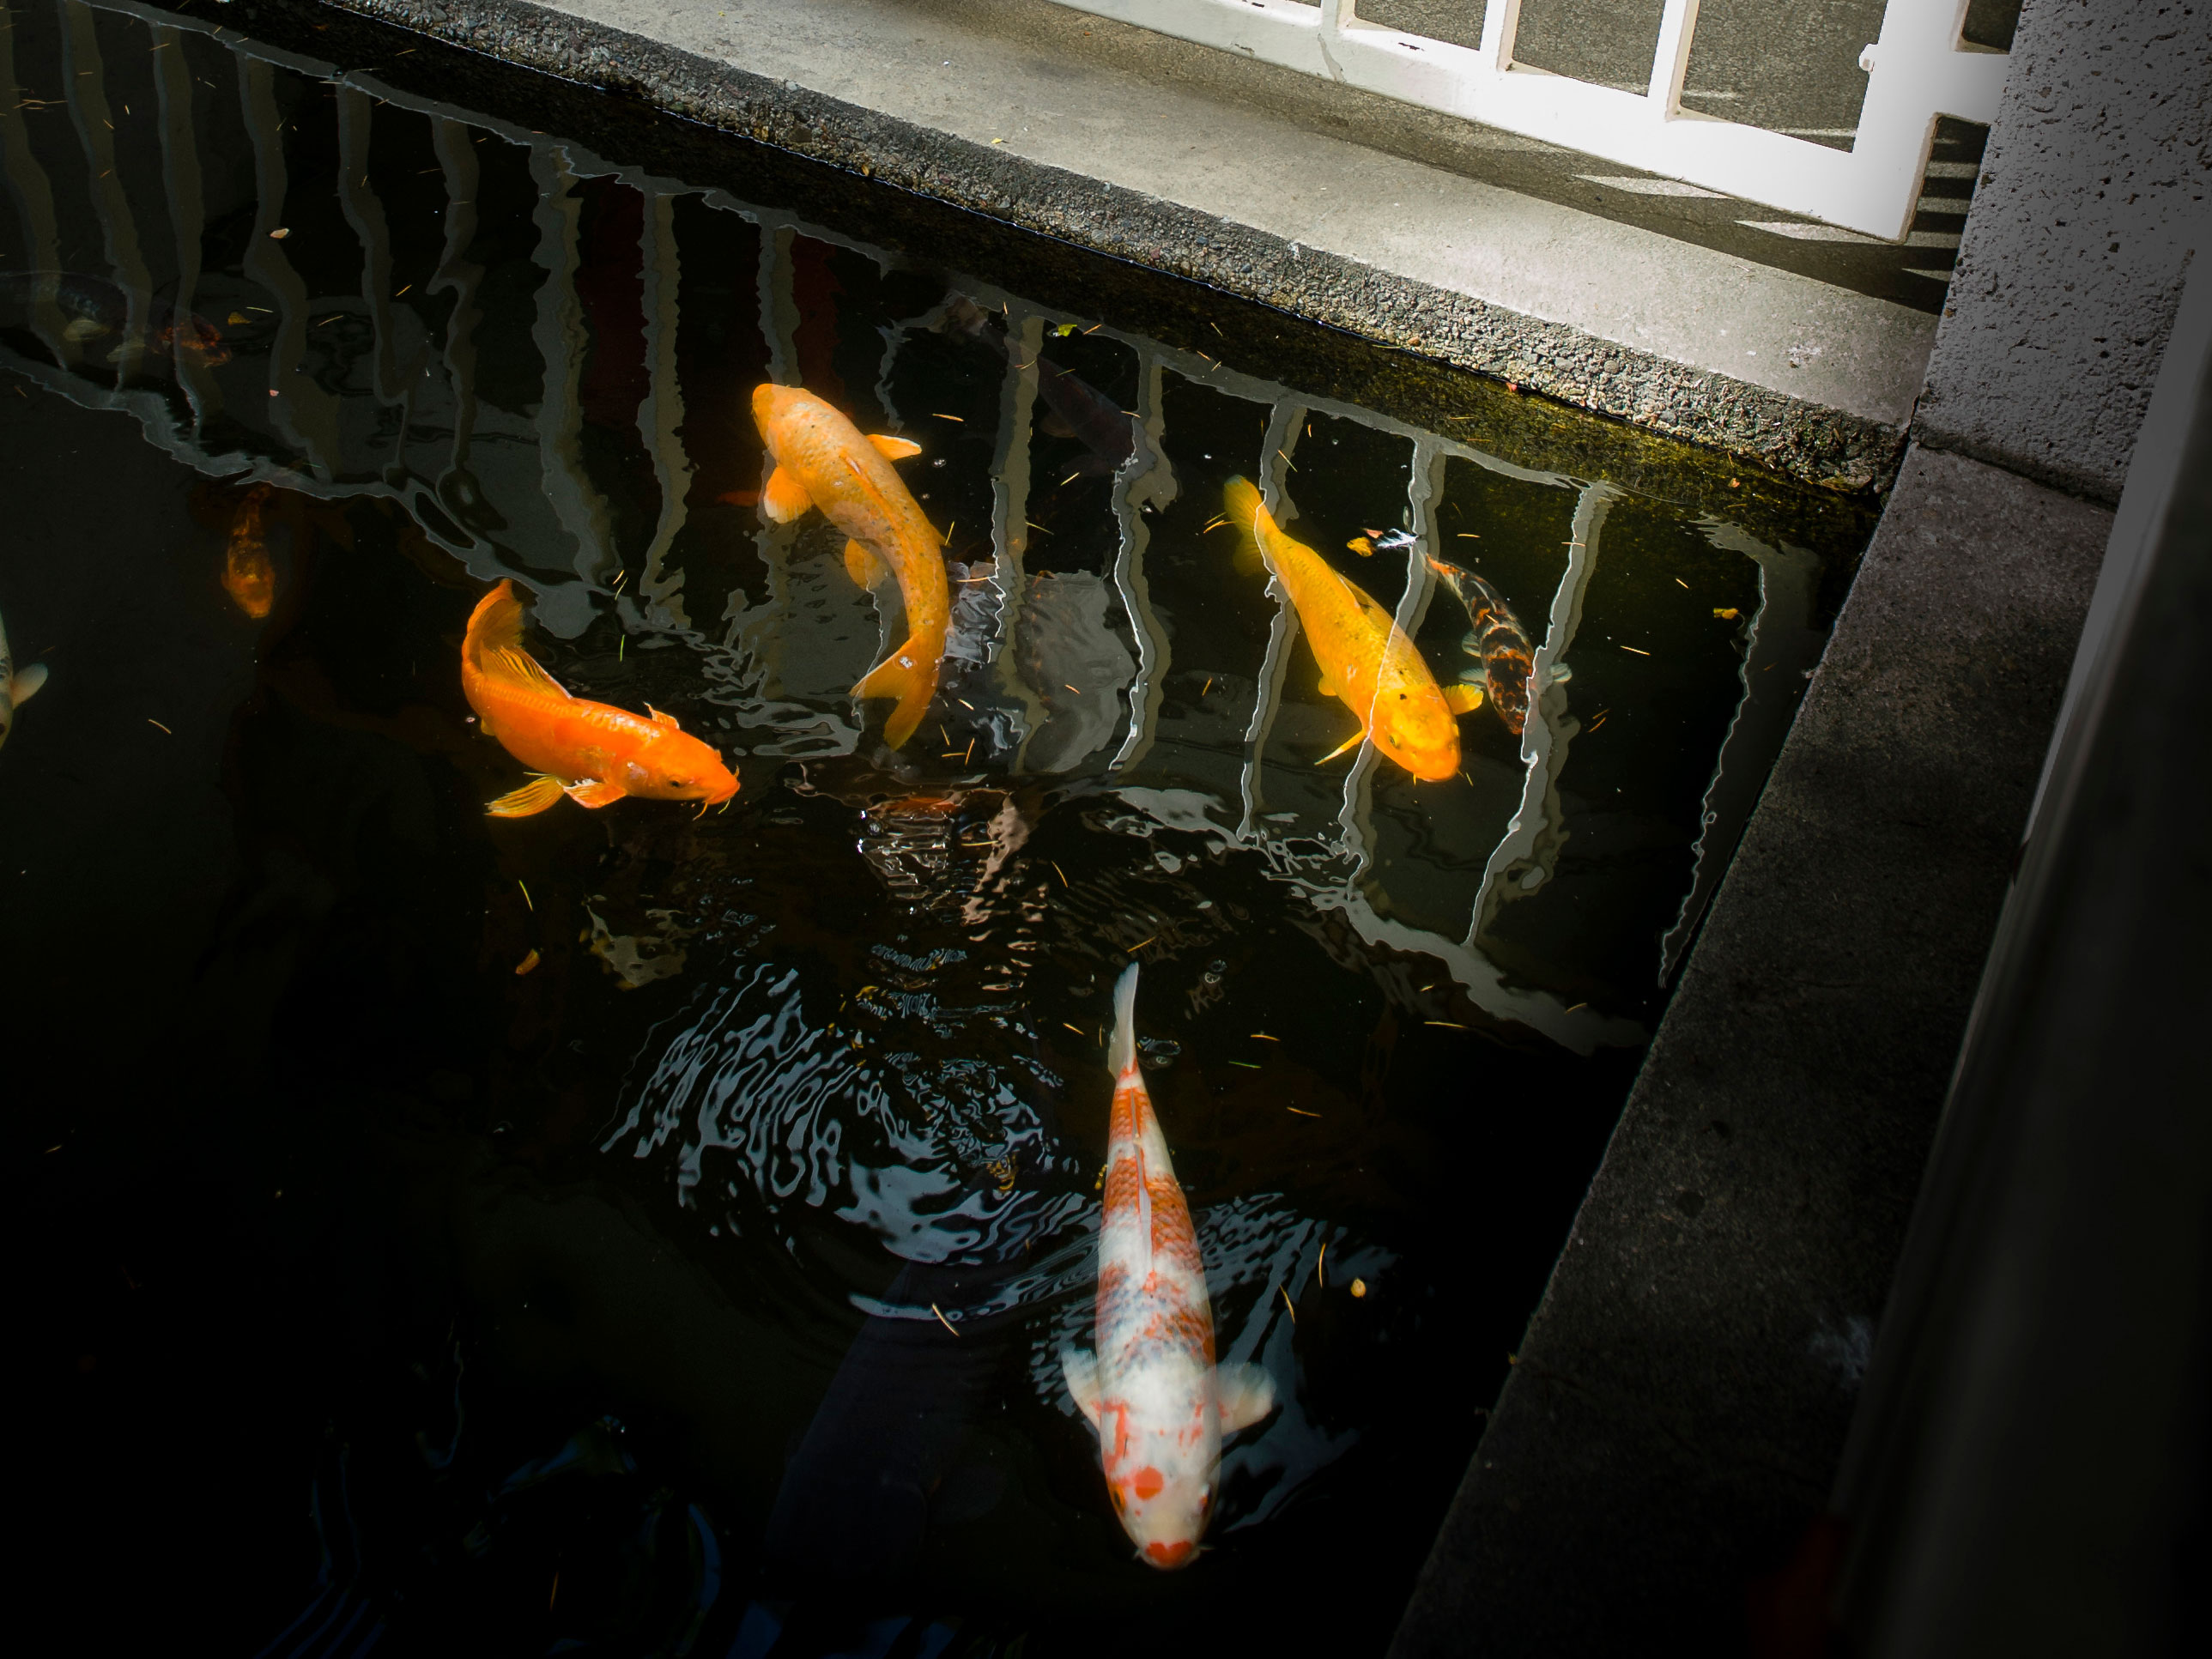 Koi fish in the reflecting pool at OMCA in Oakland